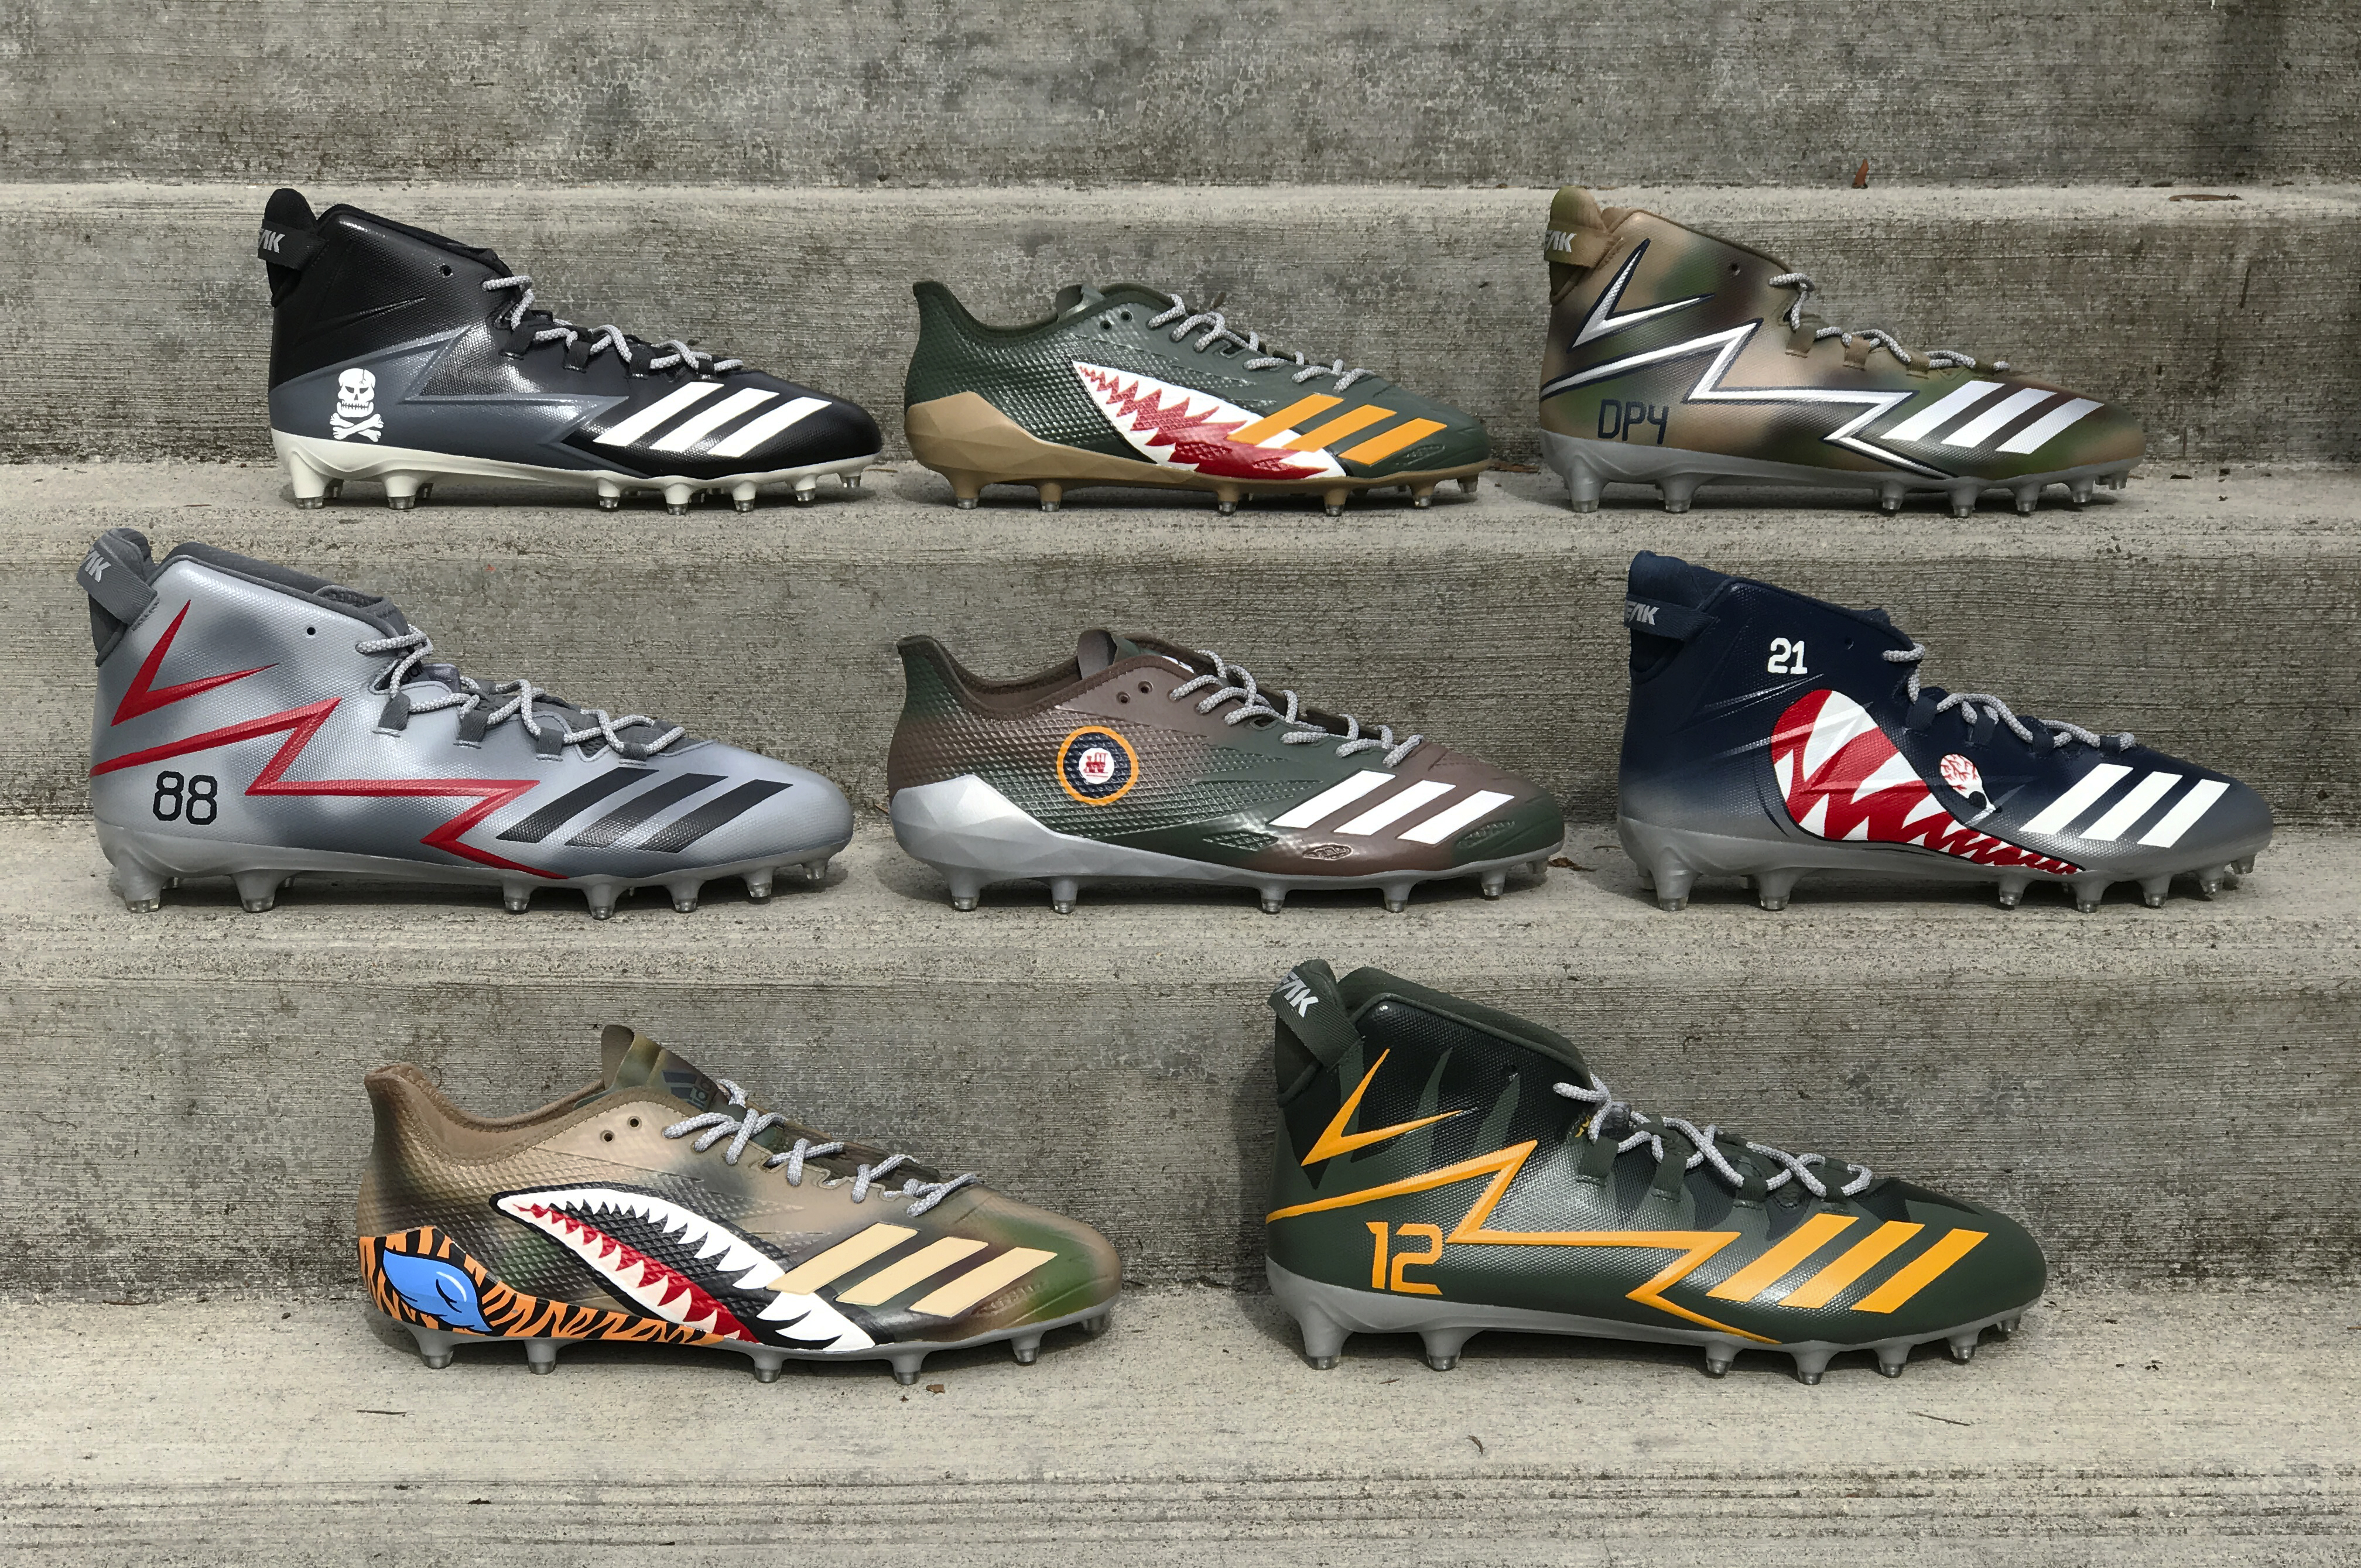 444751f4e9dc Call of Duty Partners with Adidas for Custom Seeding Kit to Celebrate  Veterans Day